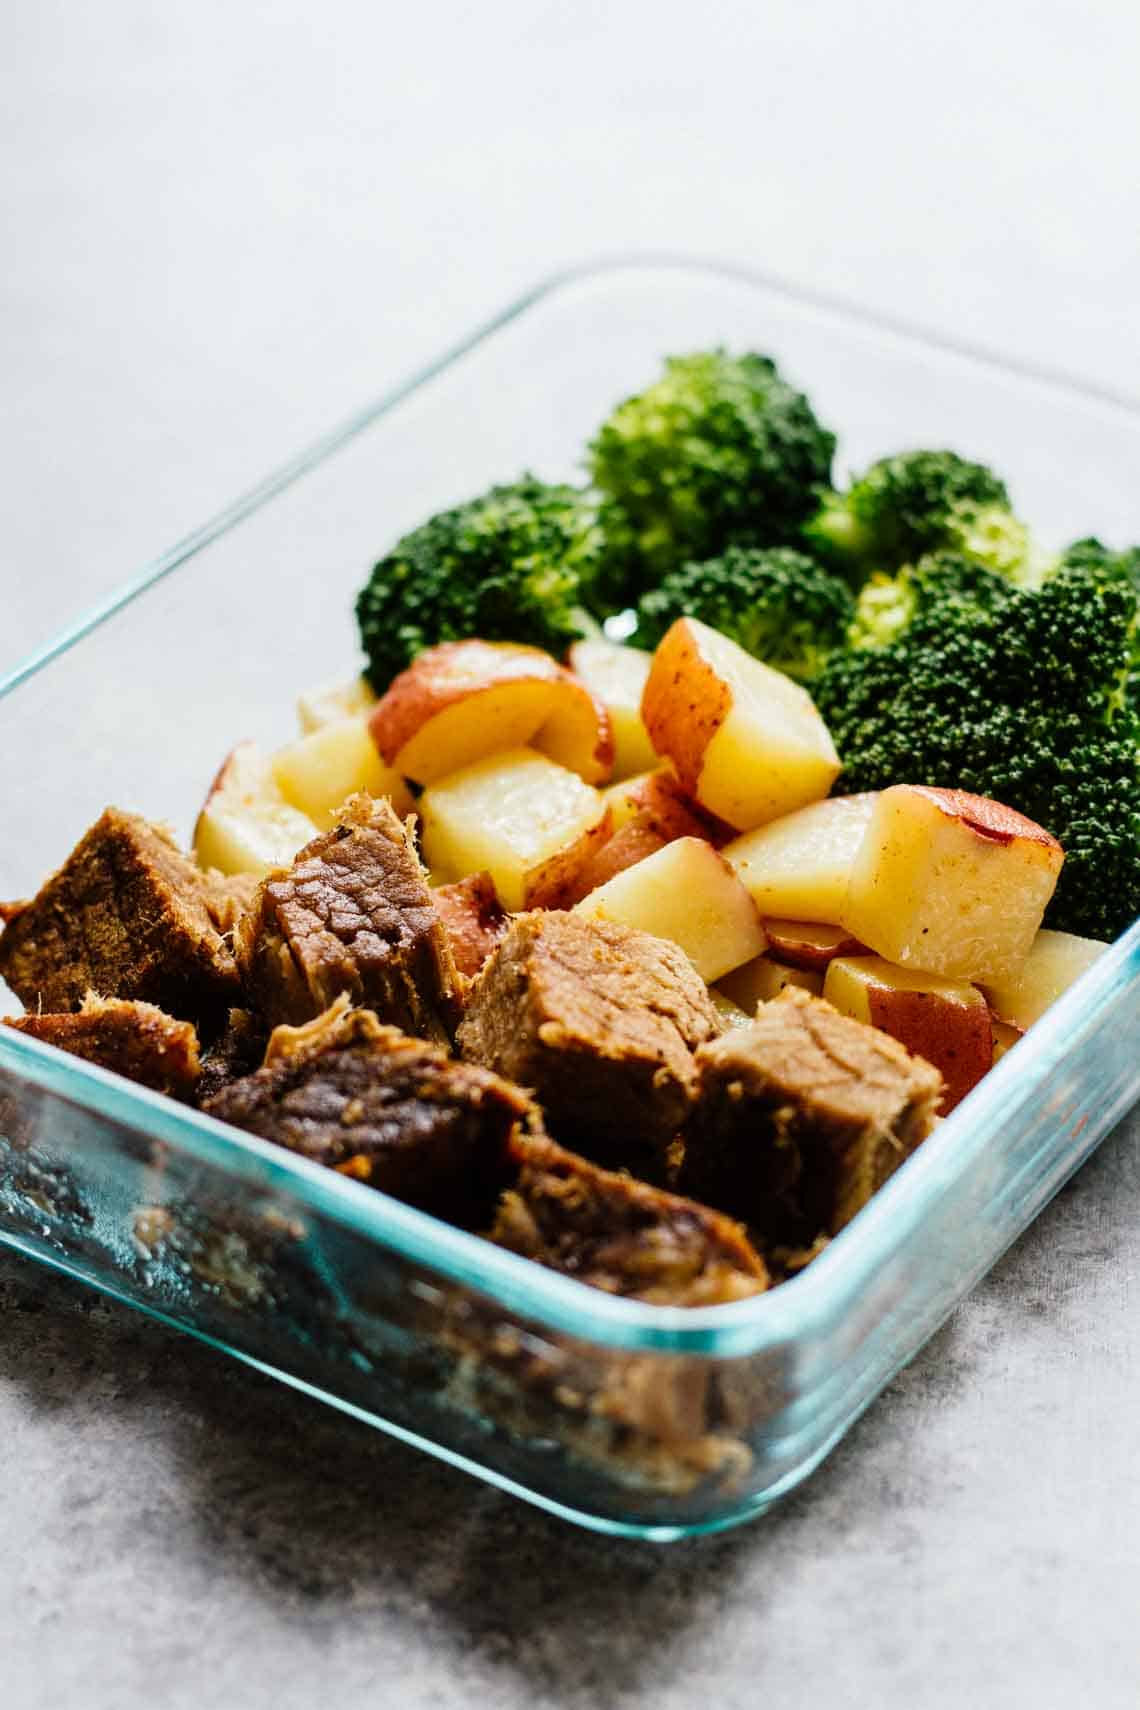 Steak potatoes meal prep bowls